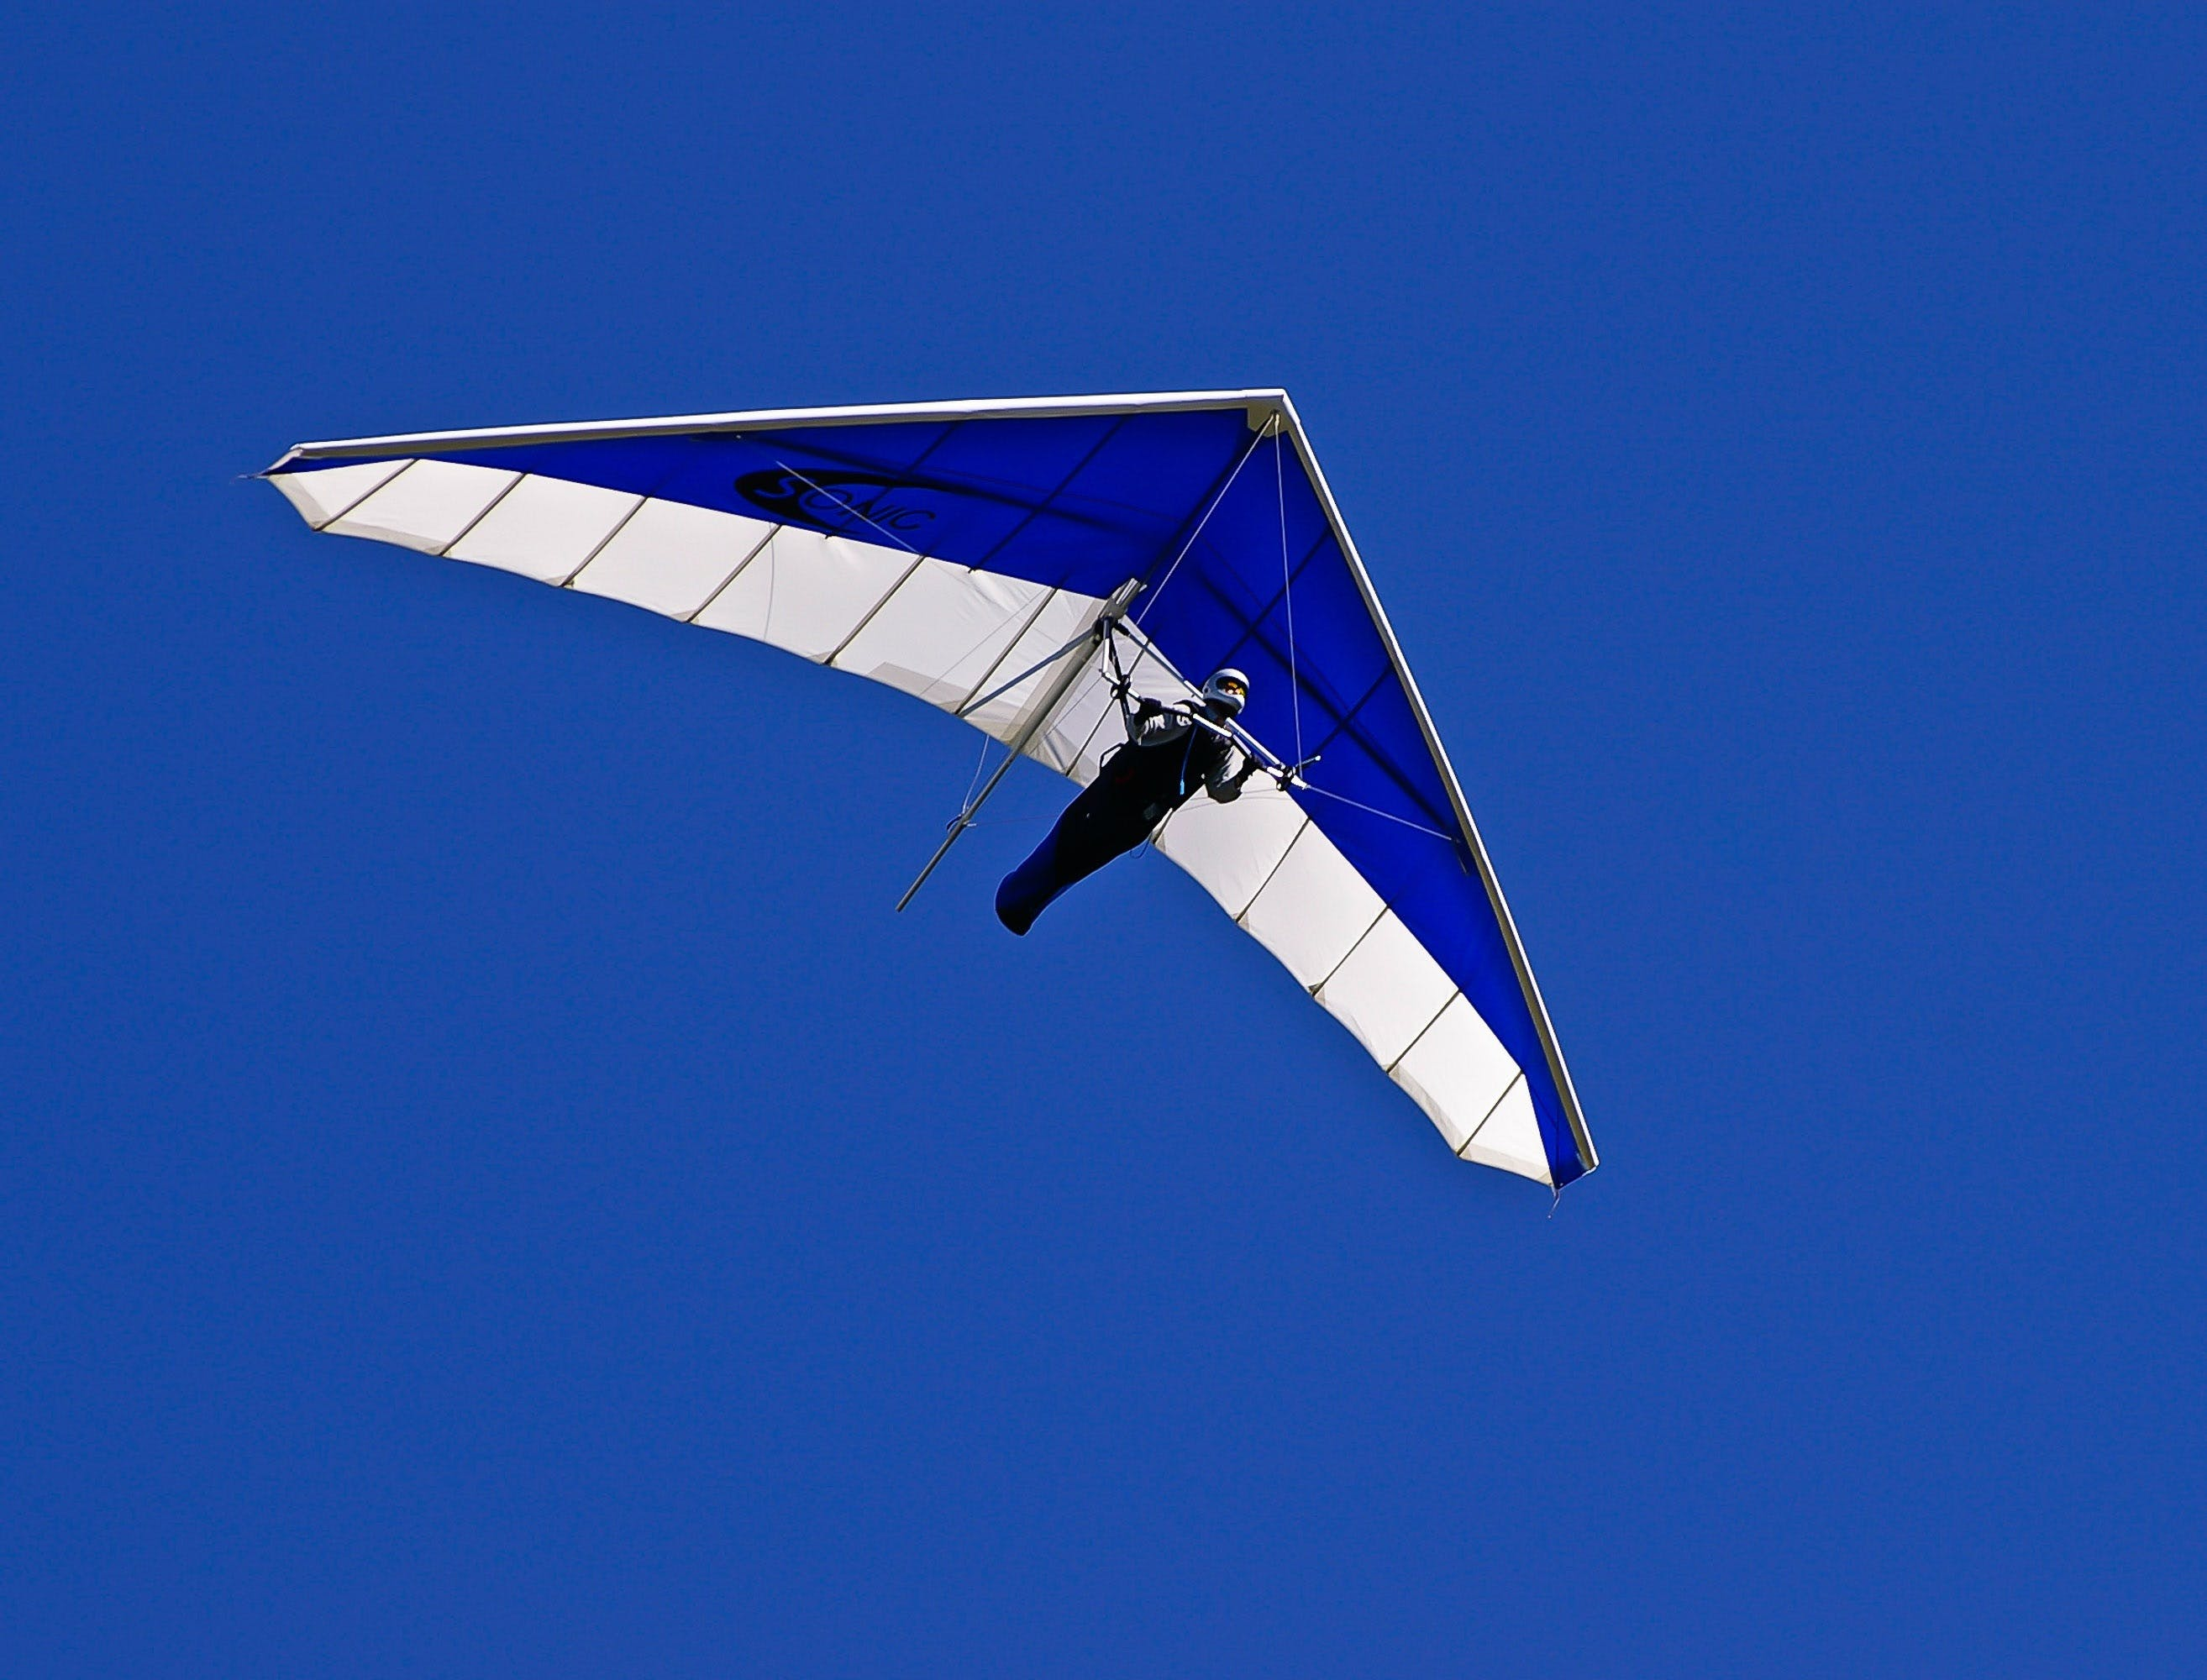 Man on Blue and White Air Glider